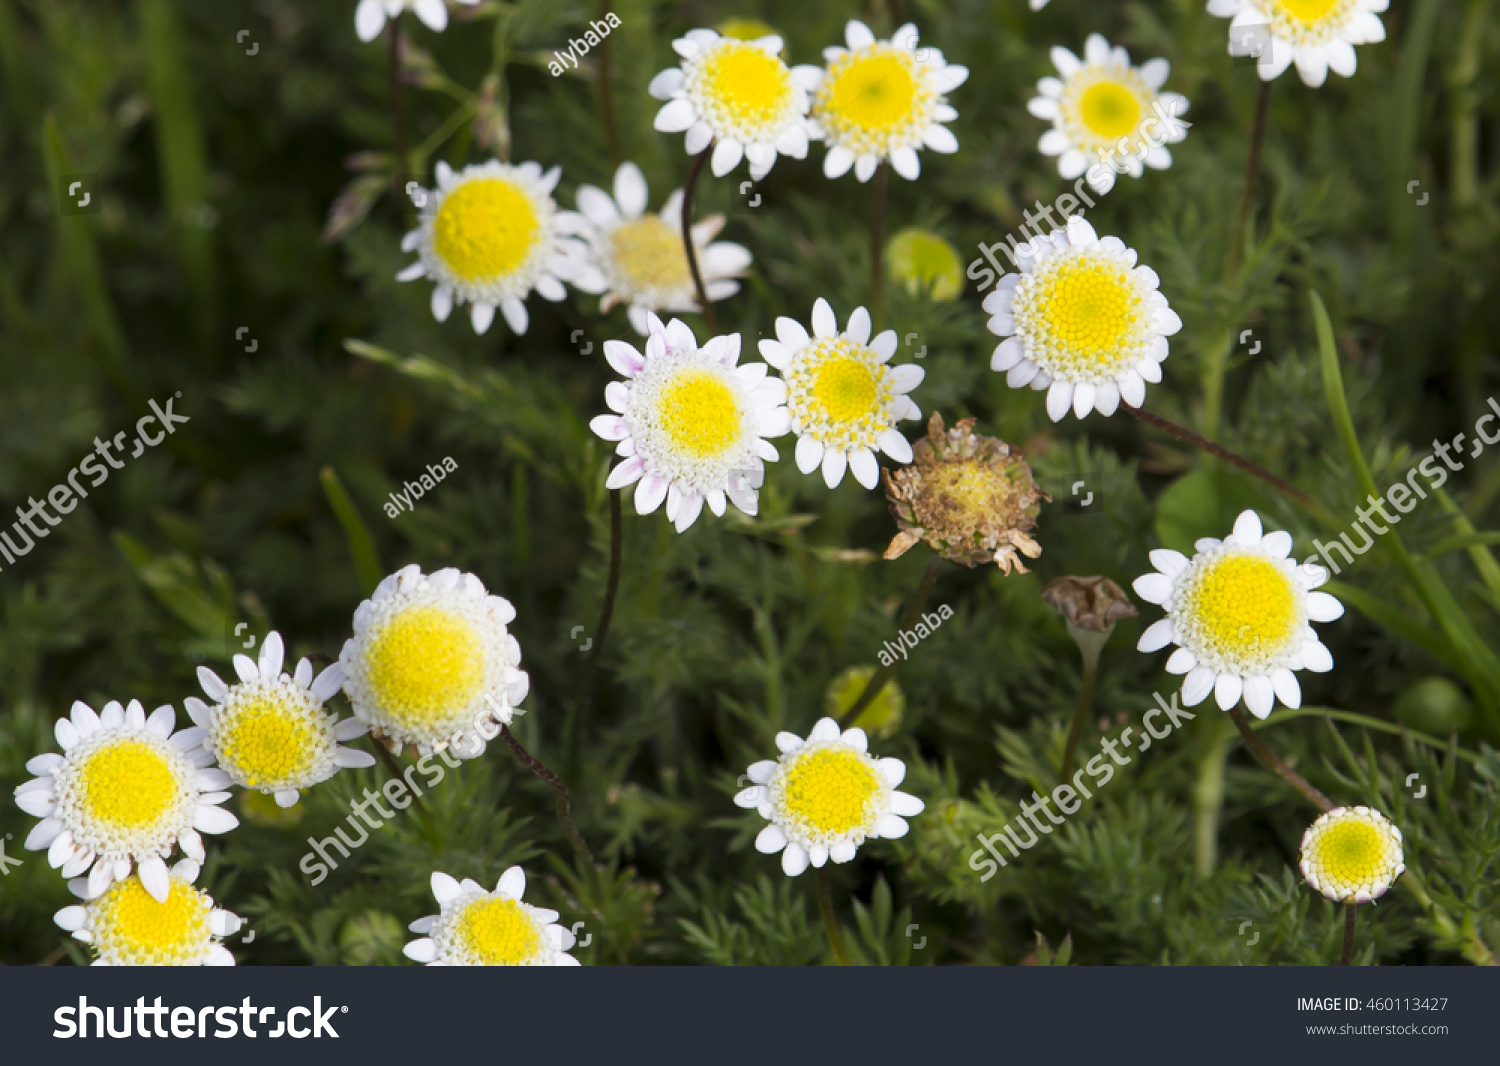 Royalty free dainty tiny cotula turbinata funnel 460113427 stock weed flowers in winter spring with feathery divided leaves white flower heads with small white ray florets with yellow center attracting bees to the mightylinksfo